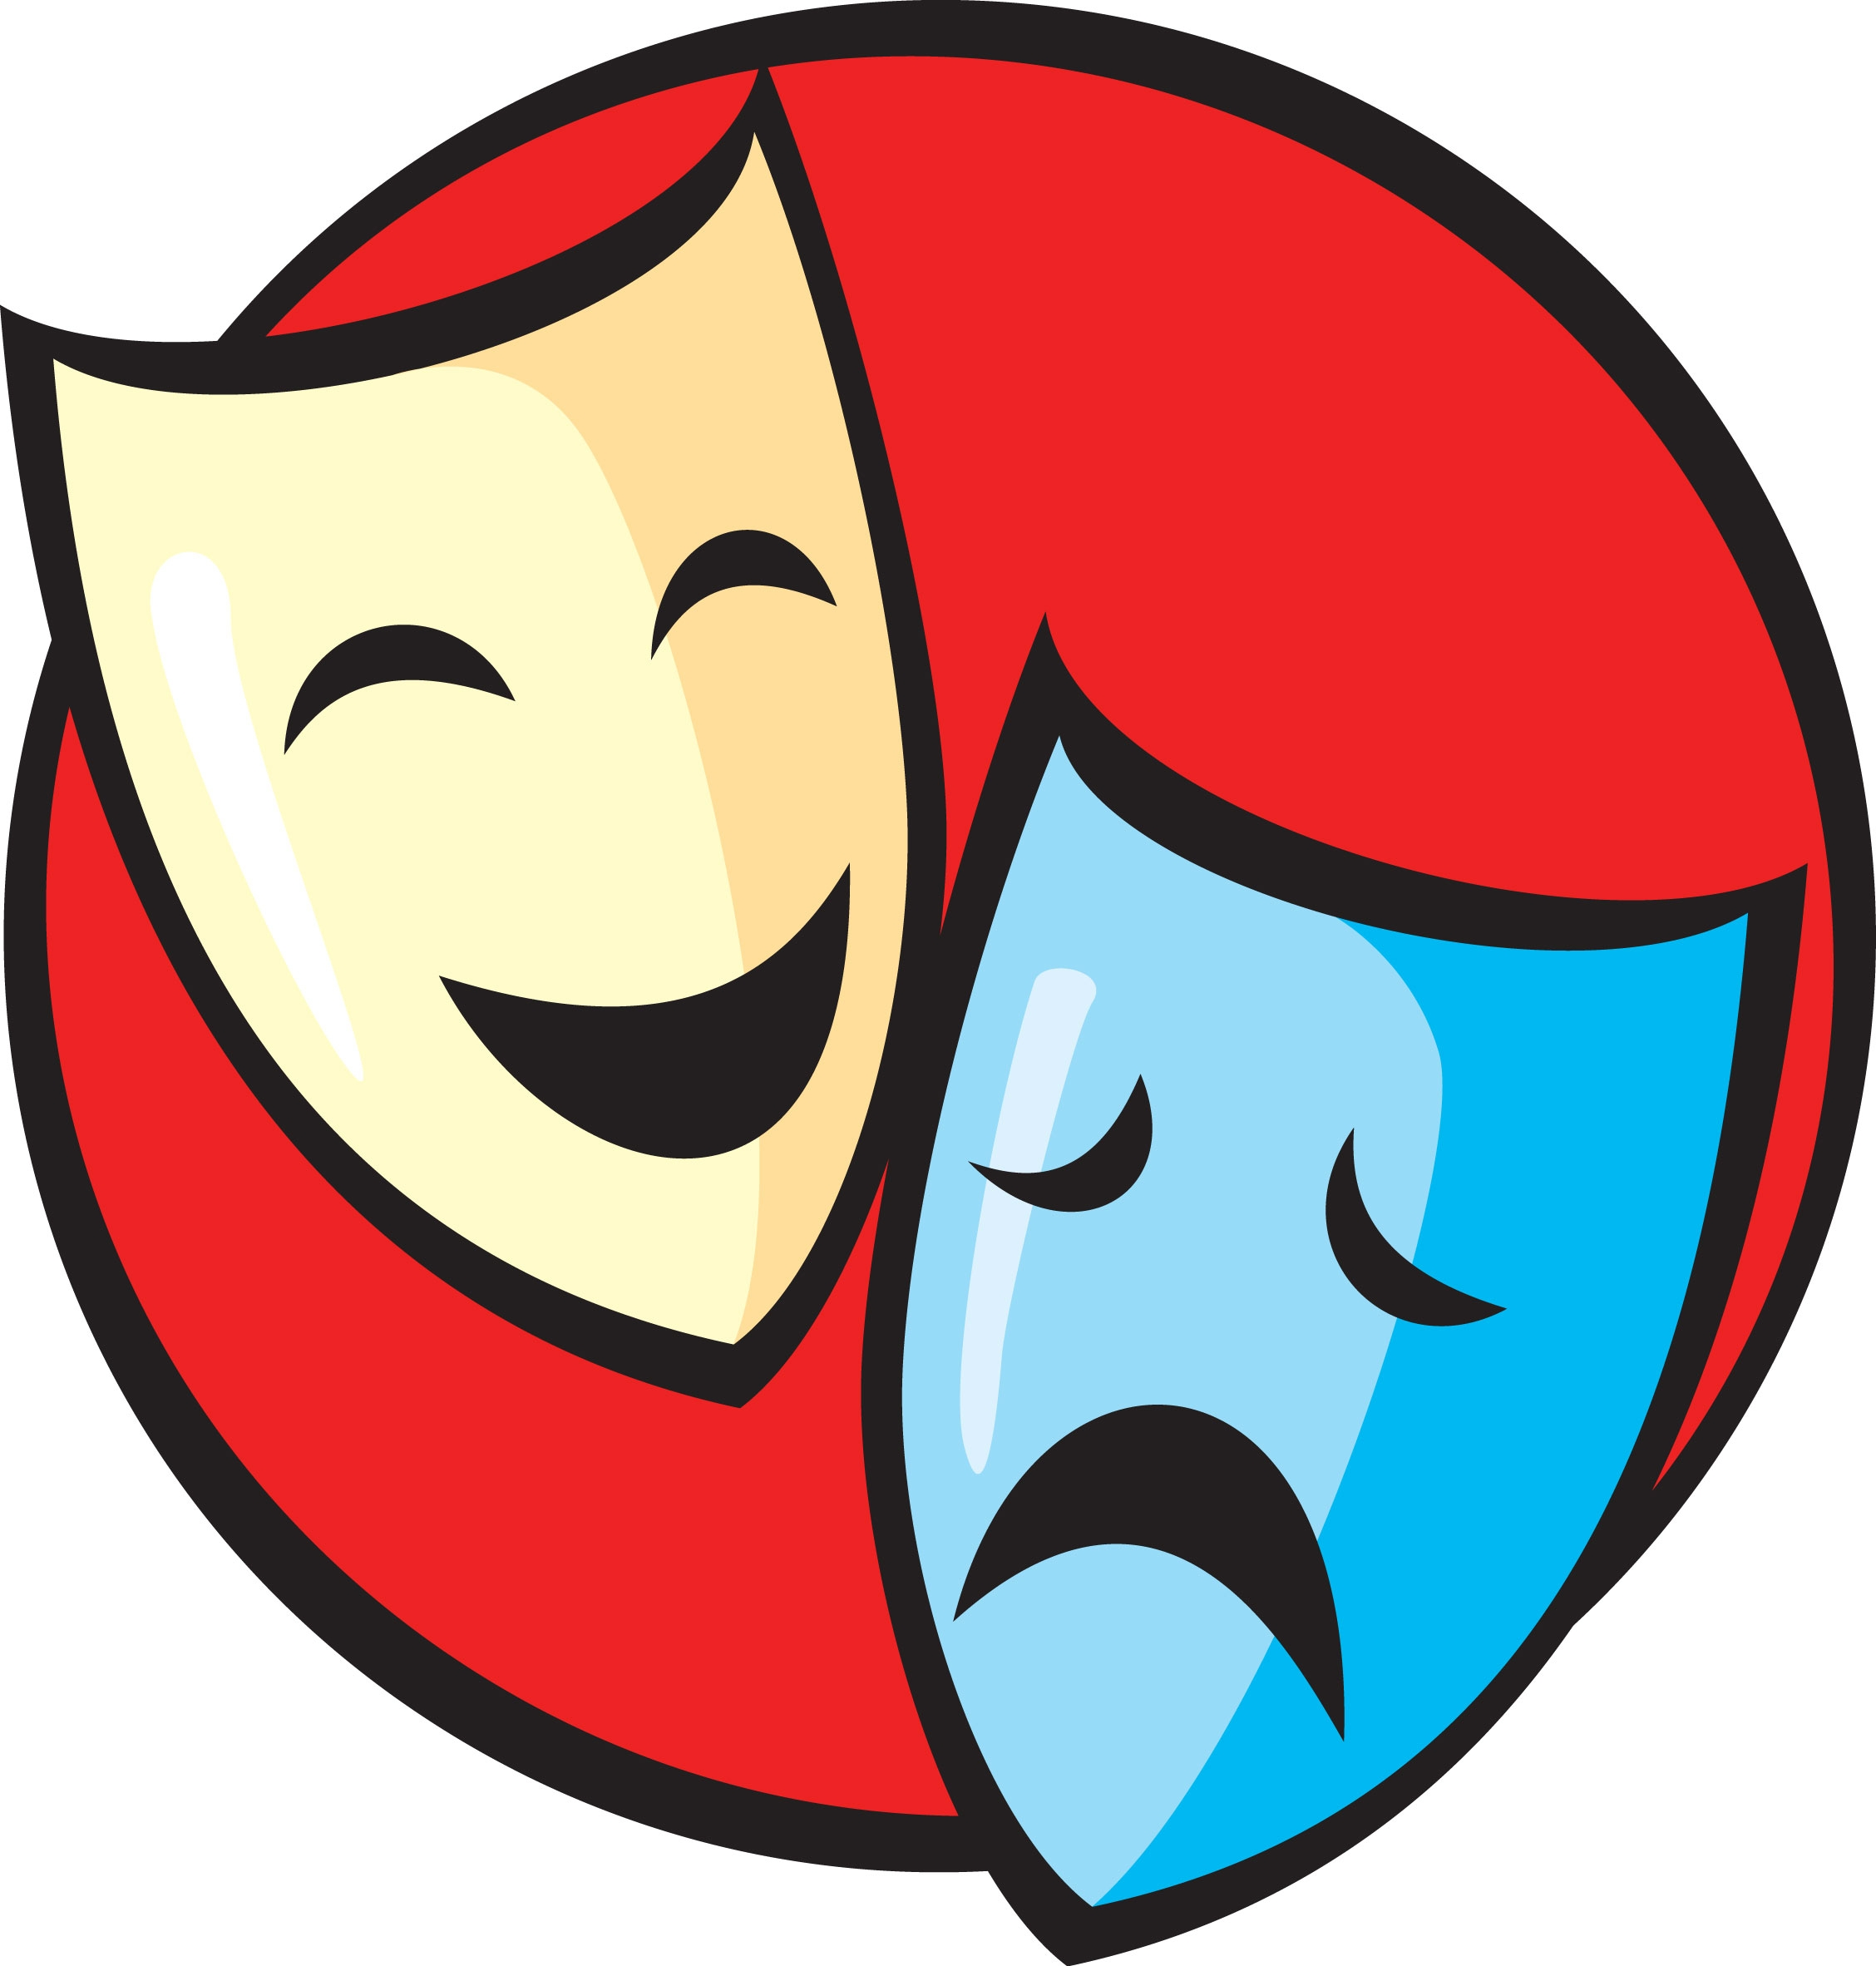 Animated drama clipart clipart images gallery for free.